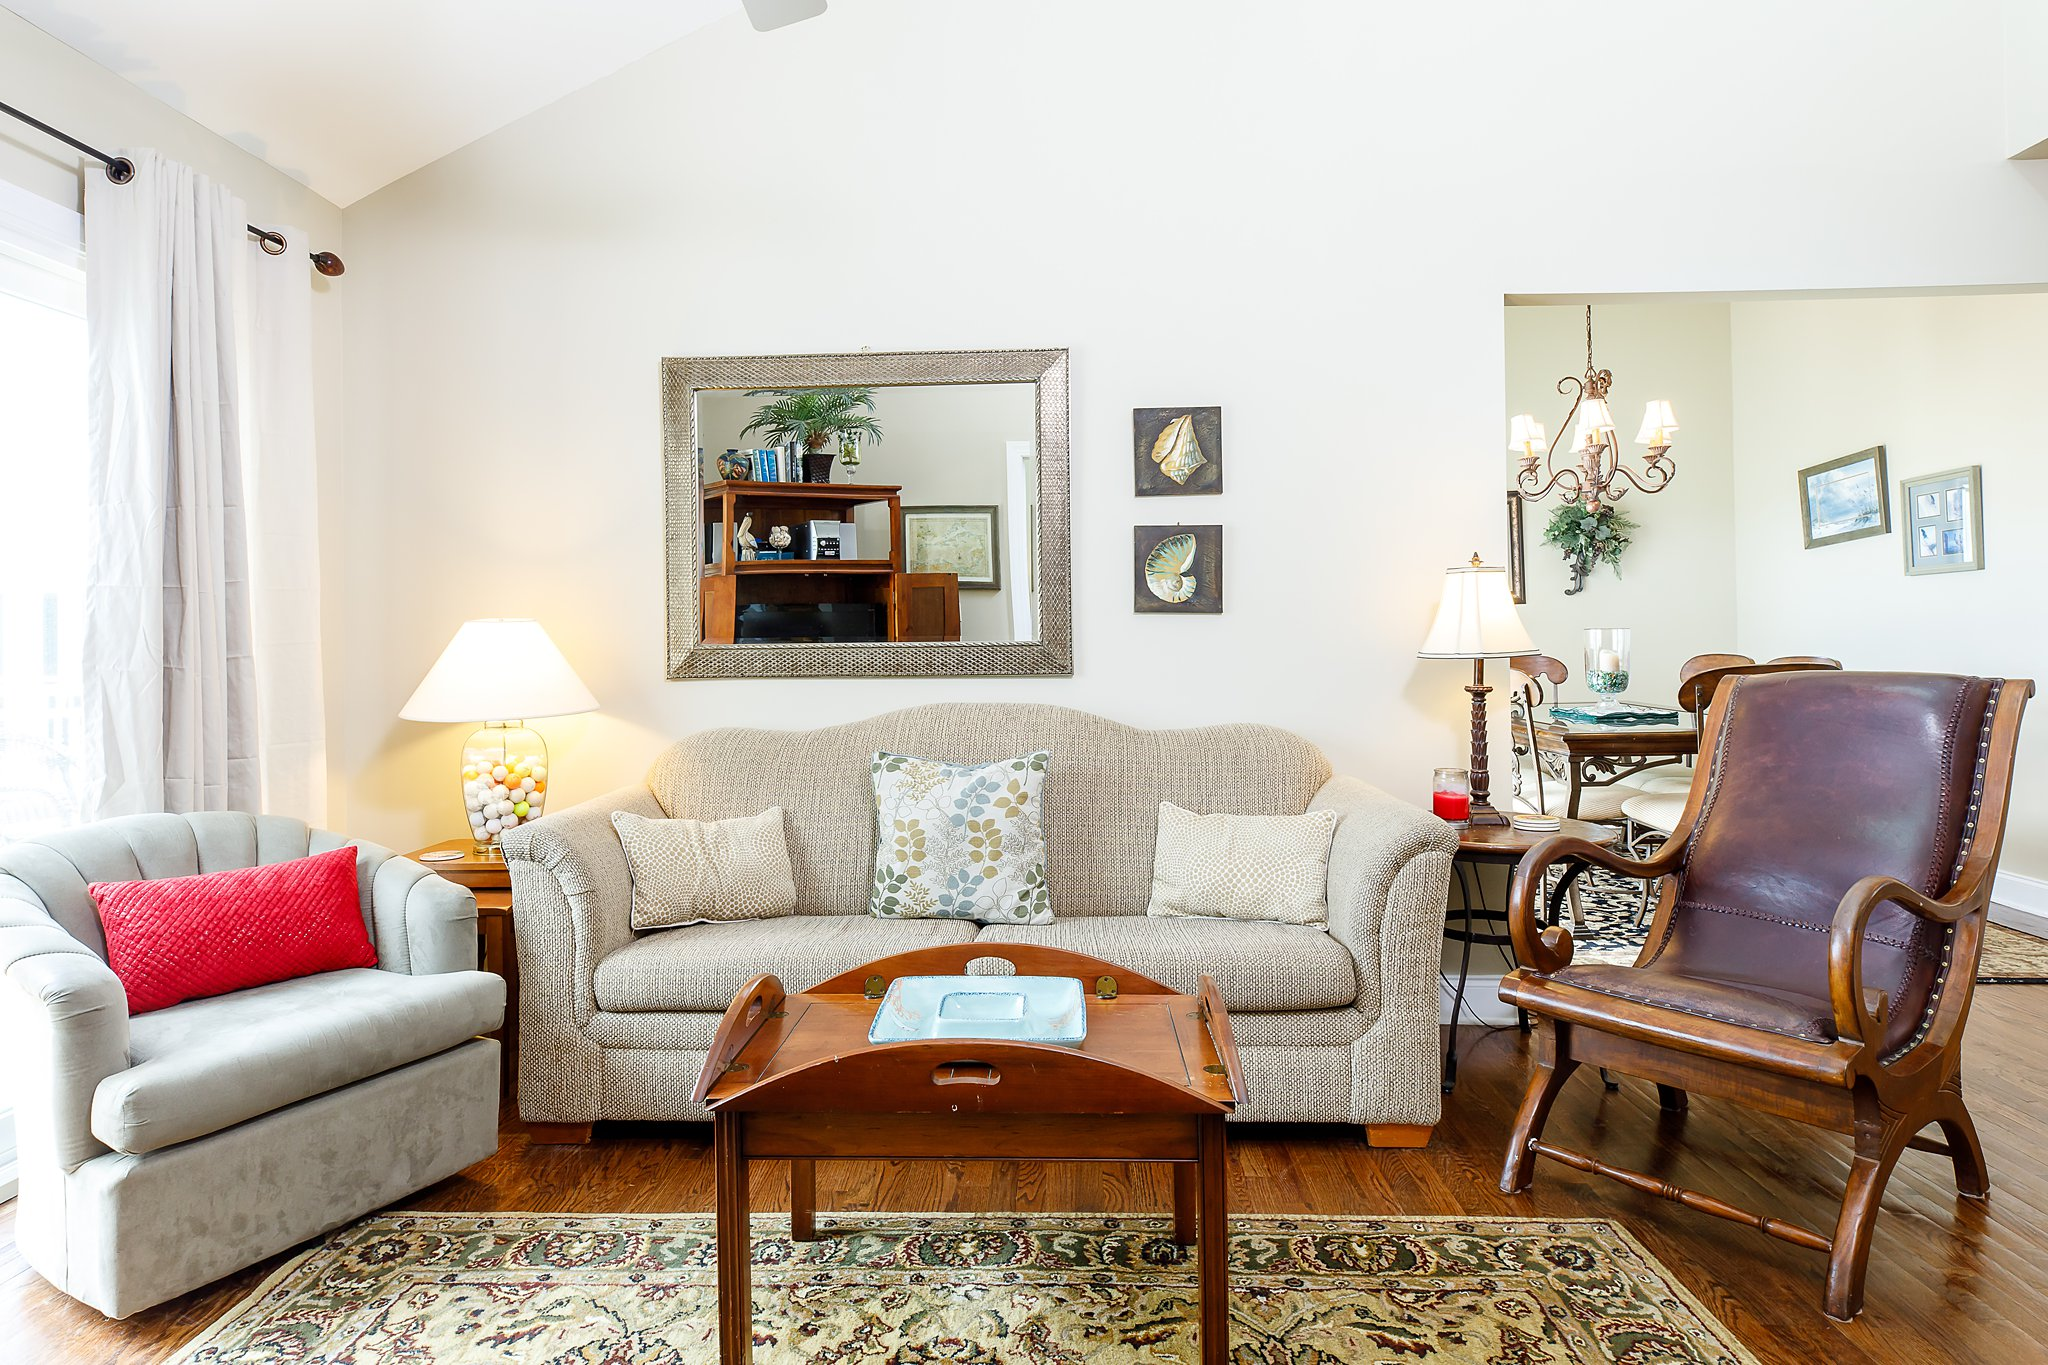 Updated photos of living room with better real estate photography for rentals